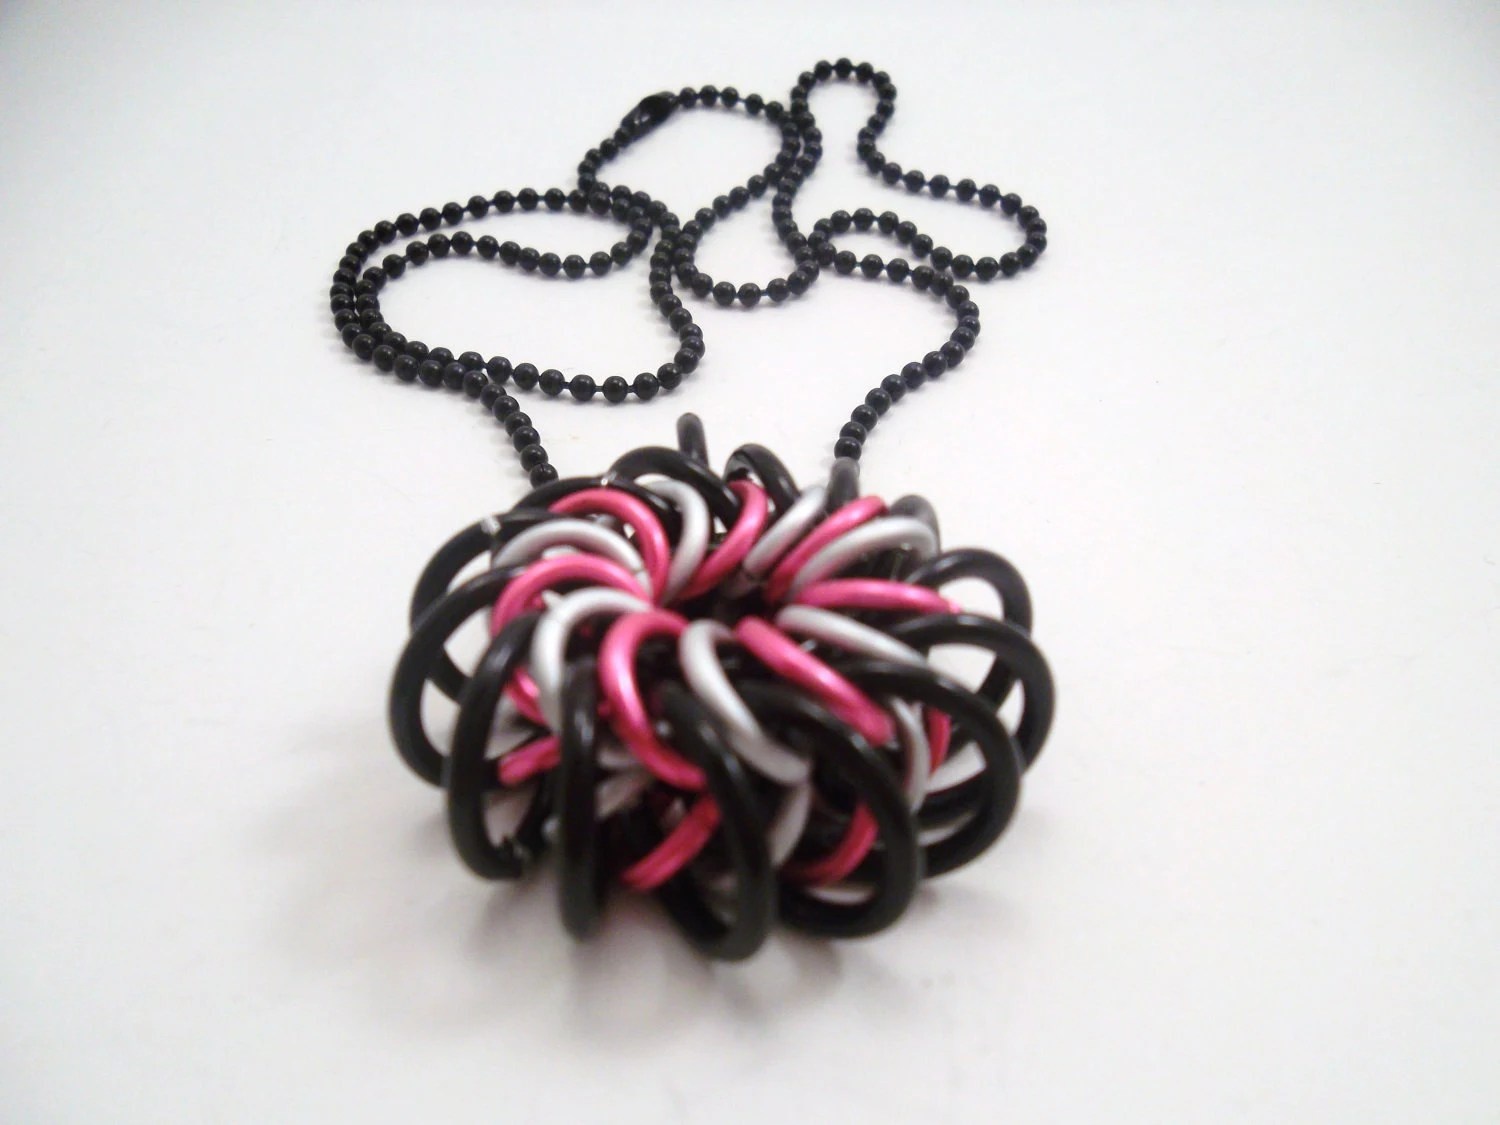 Lolly Pop Pinwheel Chainmaille Pendant Necklace in Cotton Candy Pink and Ice Chainmail